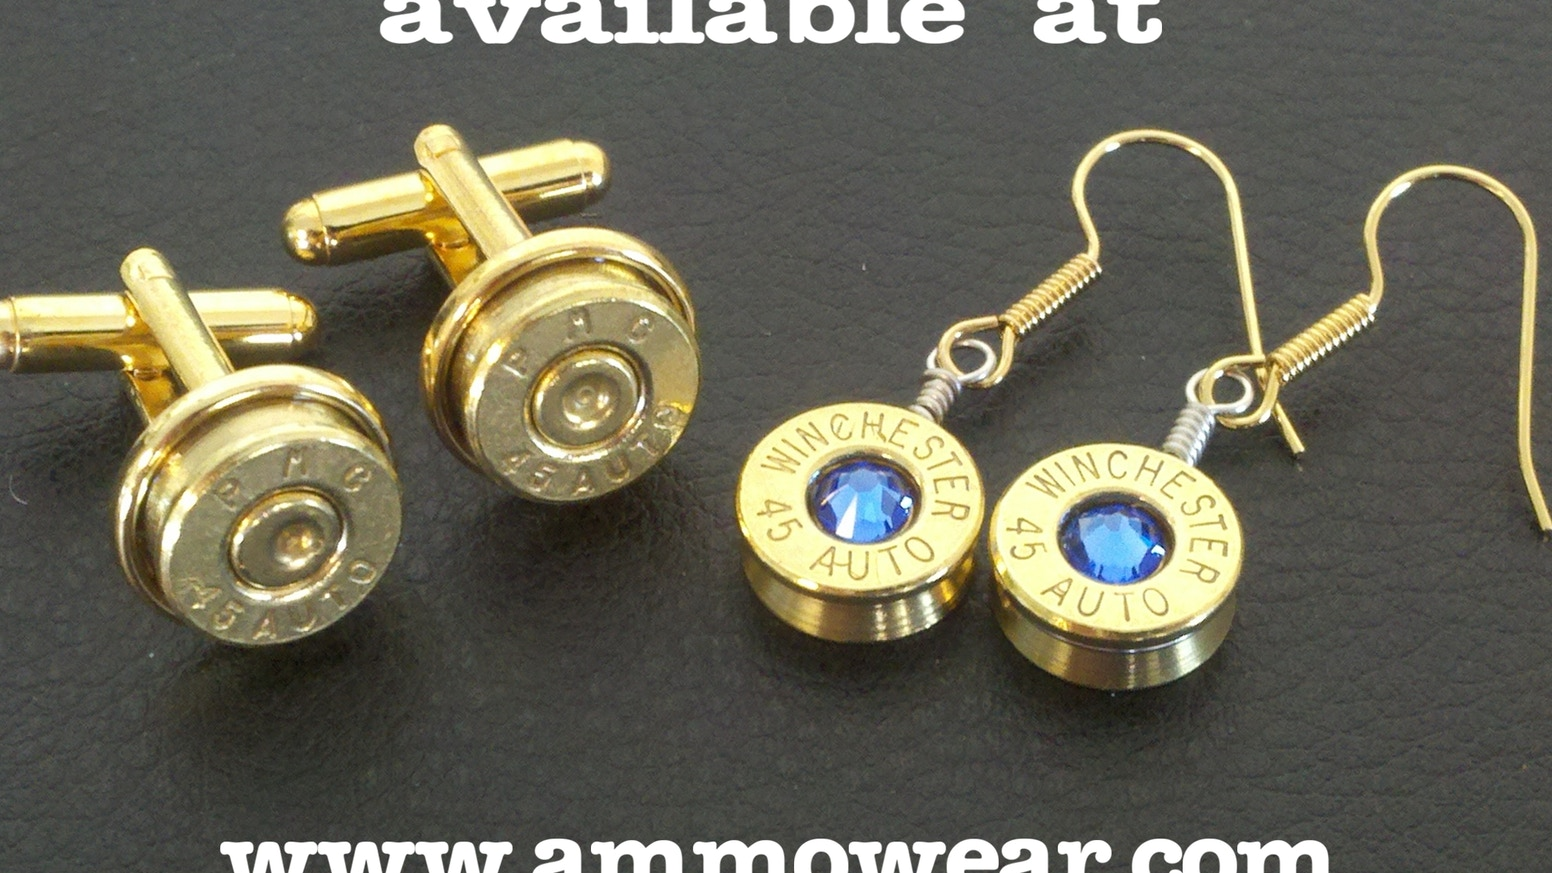 c93dc5b18f6e Ammo Wear  Hand Crafted Bullet Casing Jewelry by Byron Bartlett ...